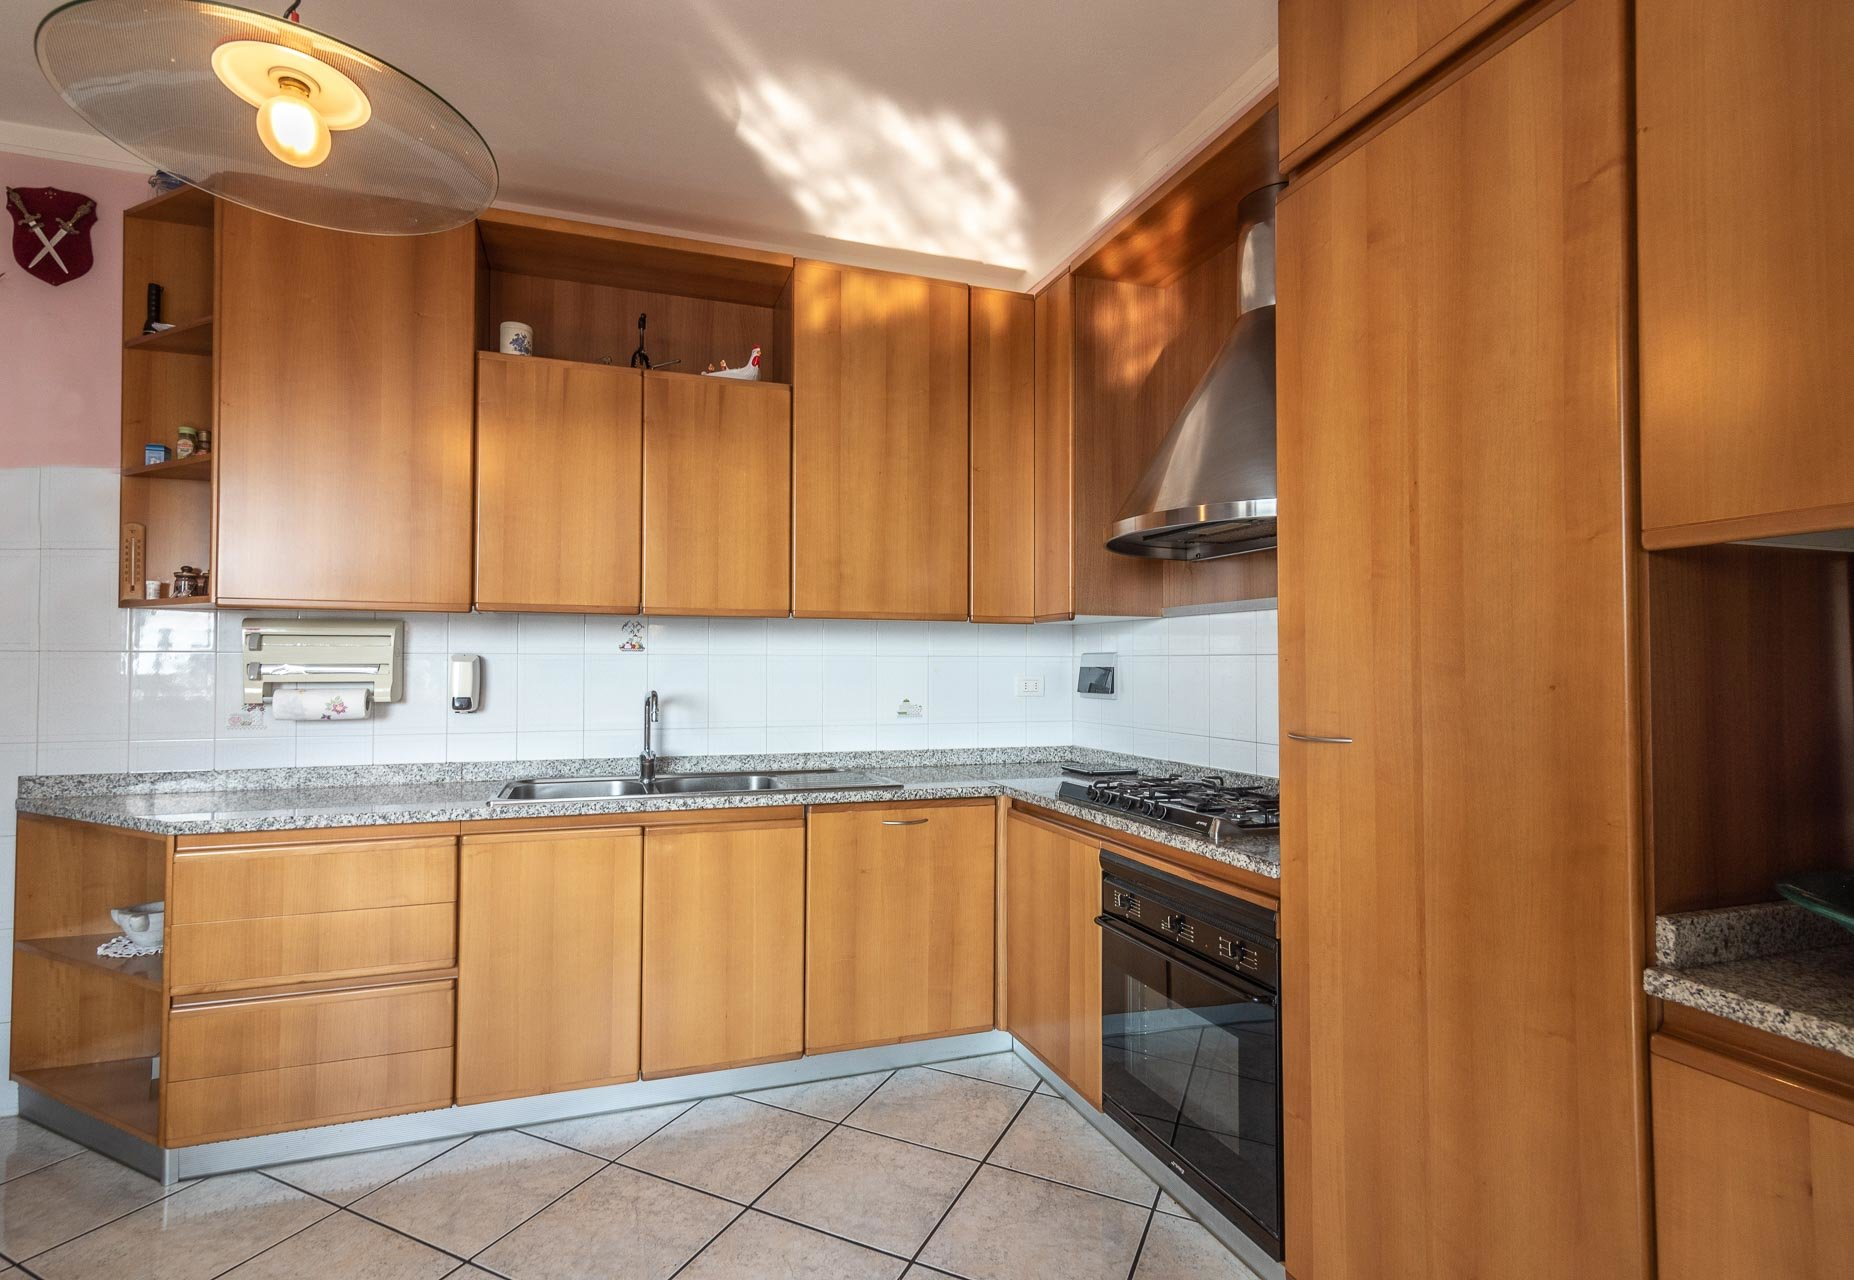 Villa for sale in Bee, with wonderful lake view - kitchenette